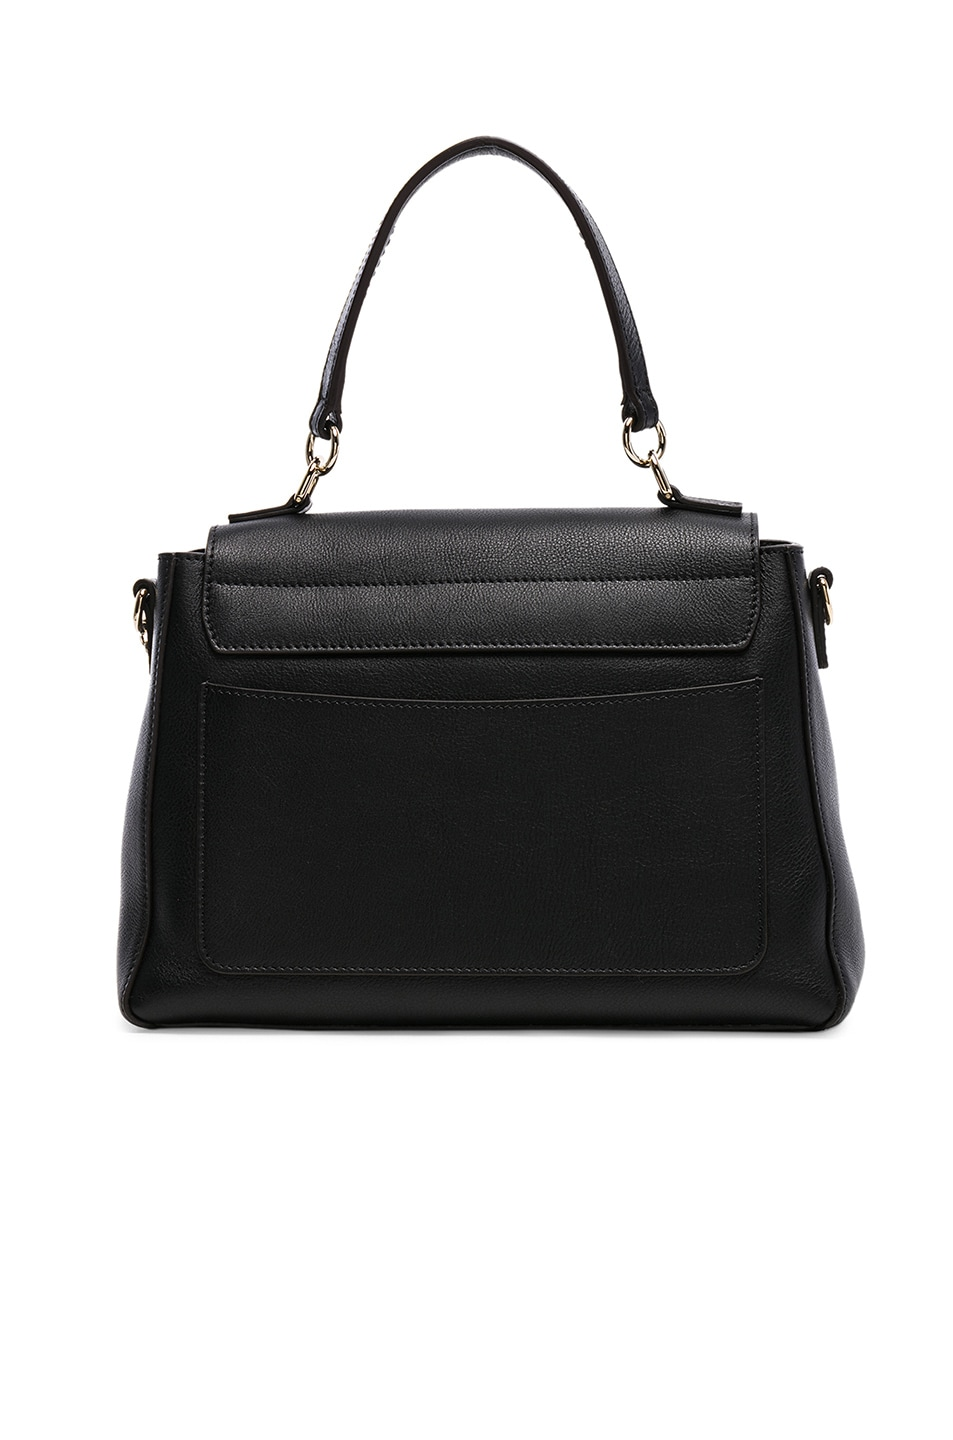 Image 3 of Chloe Small Faye Calfskin & Suede Day Bag in Black